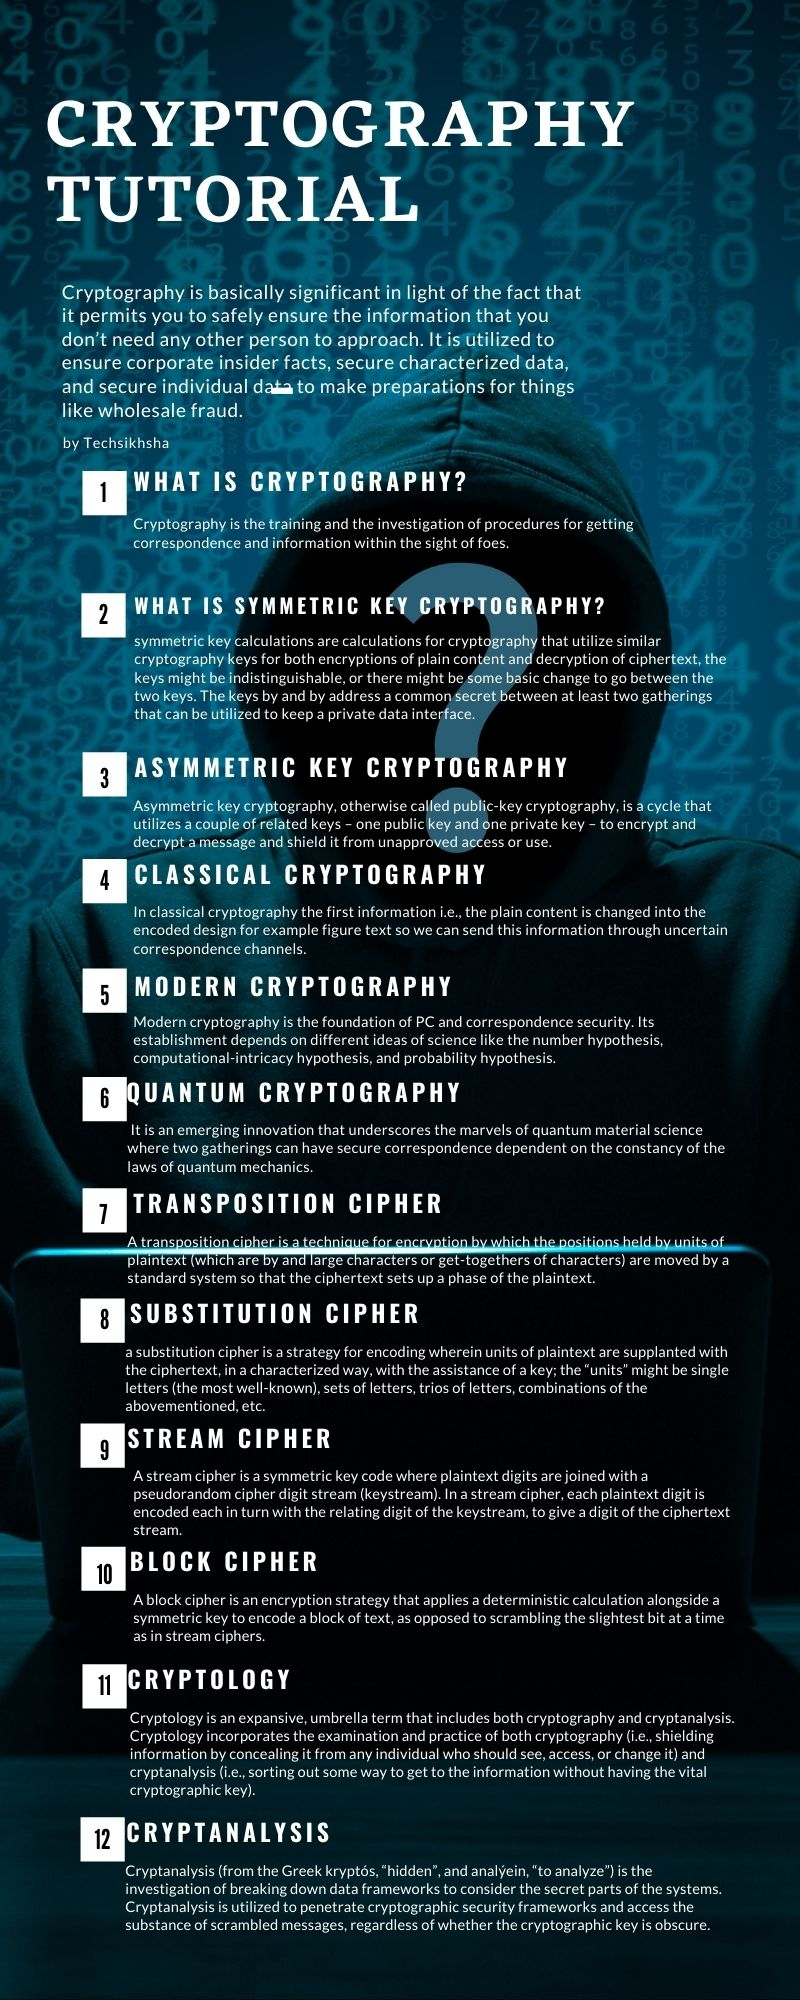 types of cryptography and their definitions